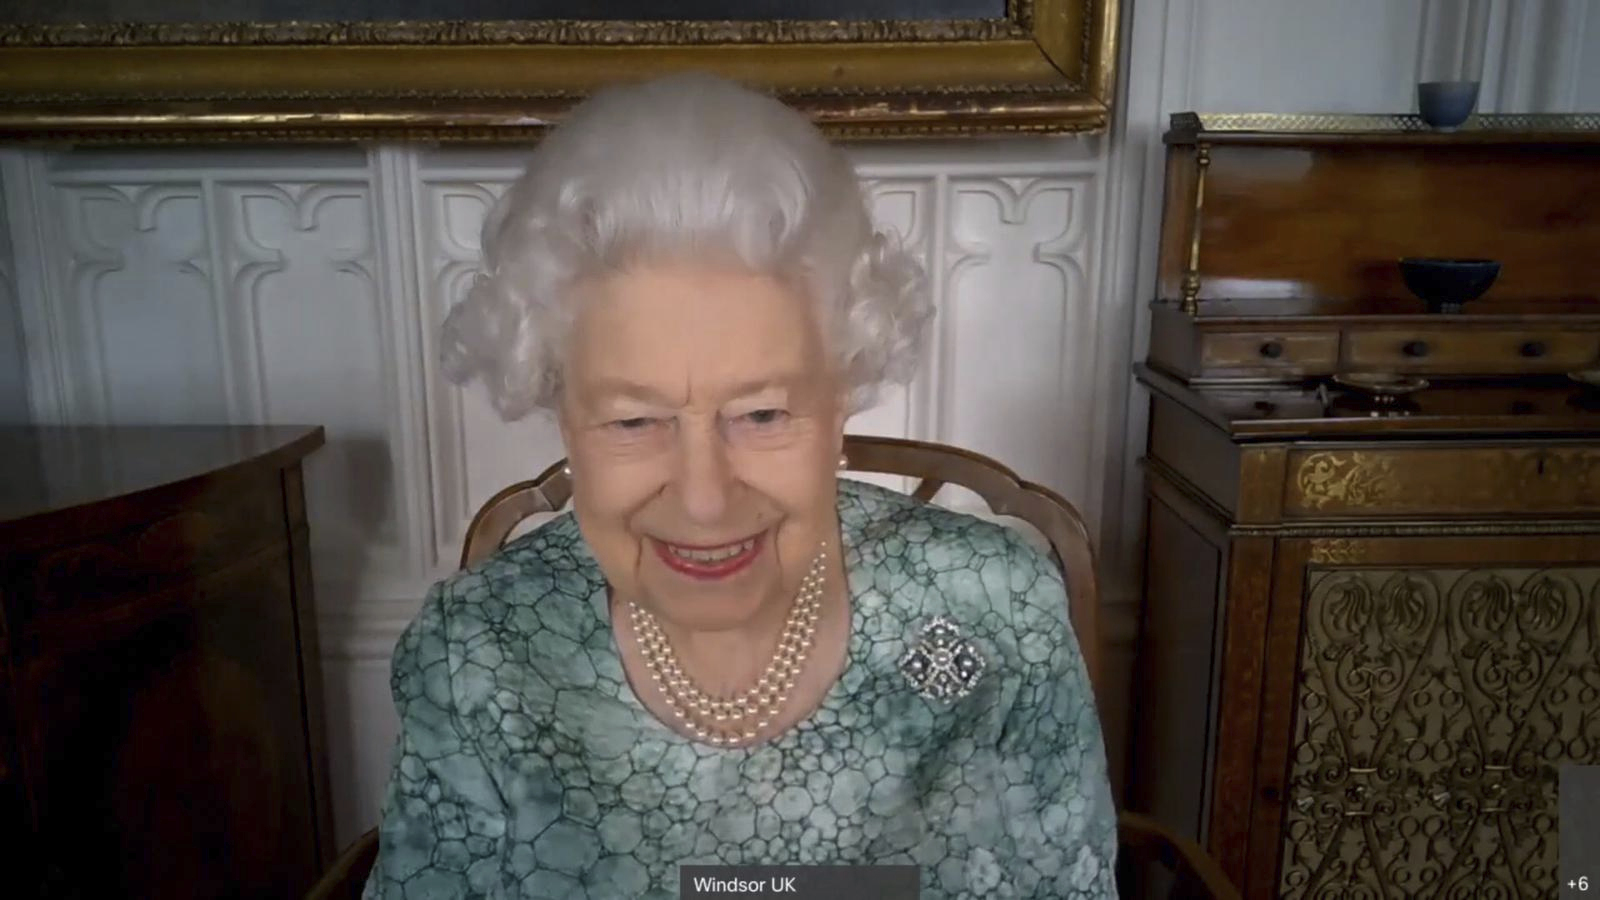 - a11273369f8d492984f2bcaafea04ae4 - Queen tells kids studying space of meeting Soviet cosmonaut | WWTI